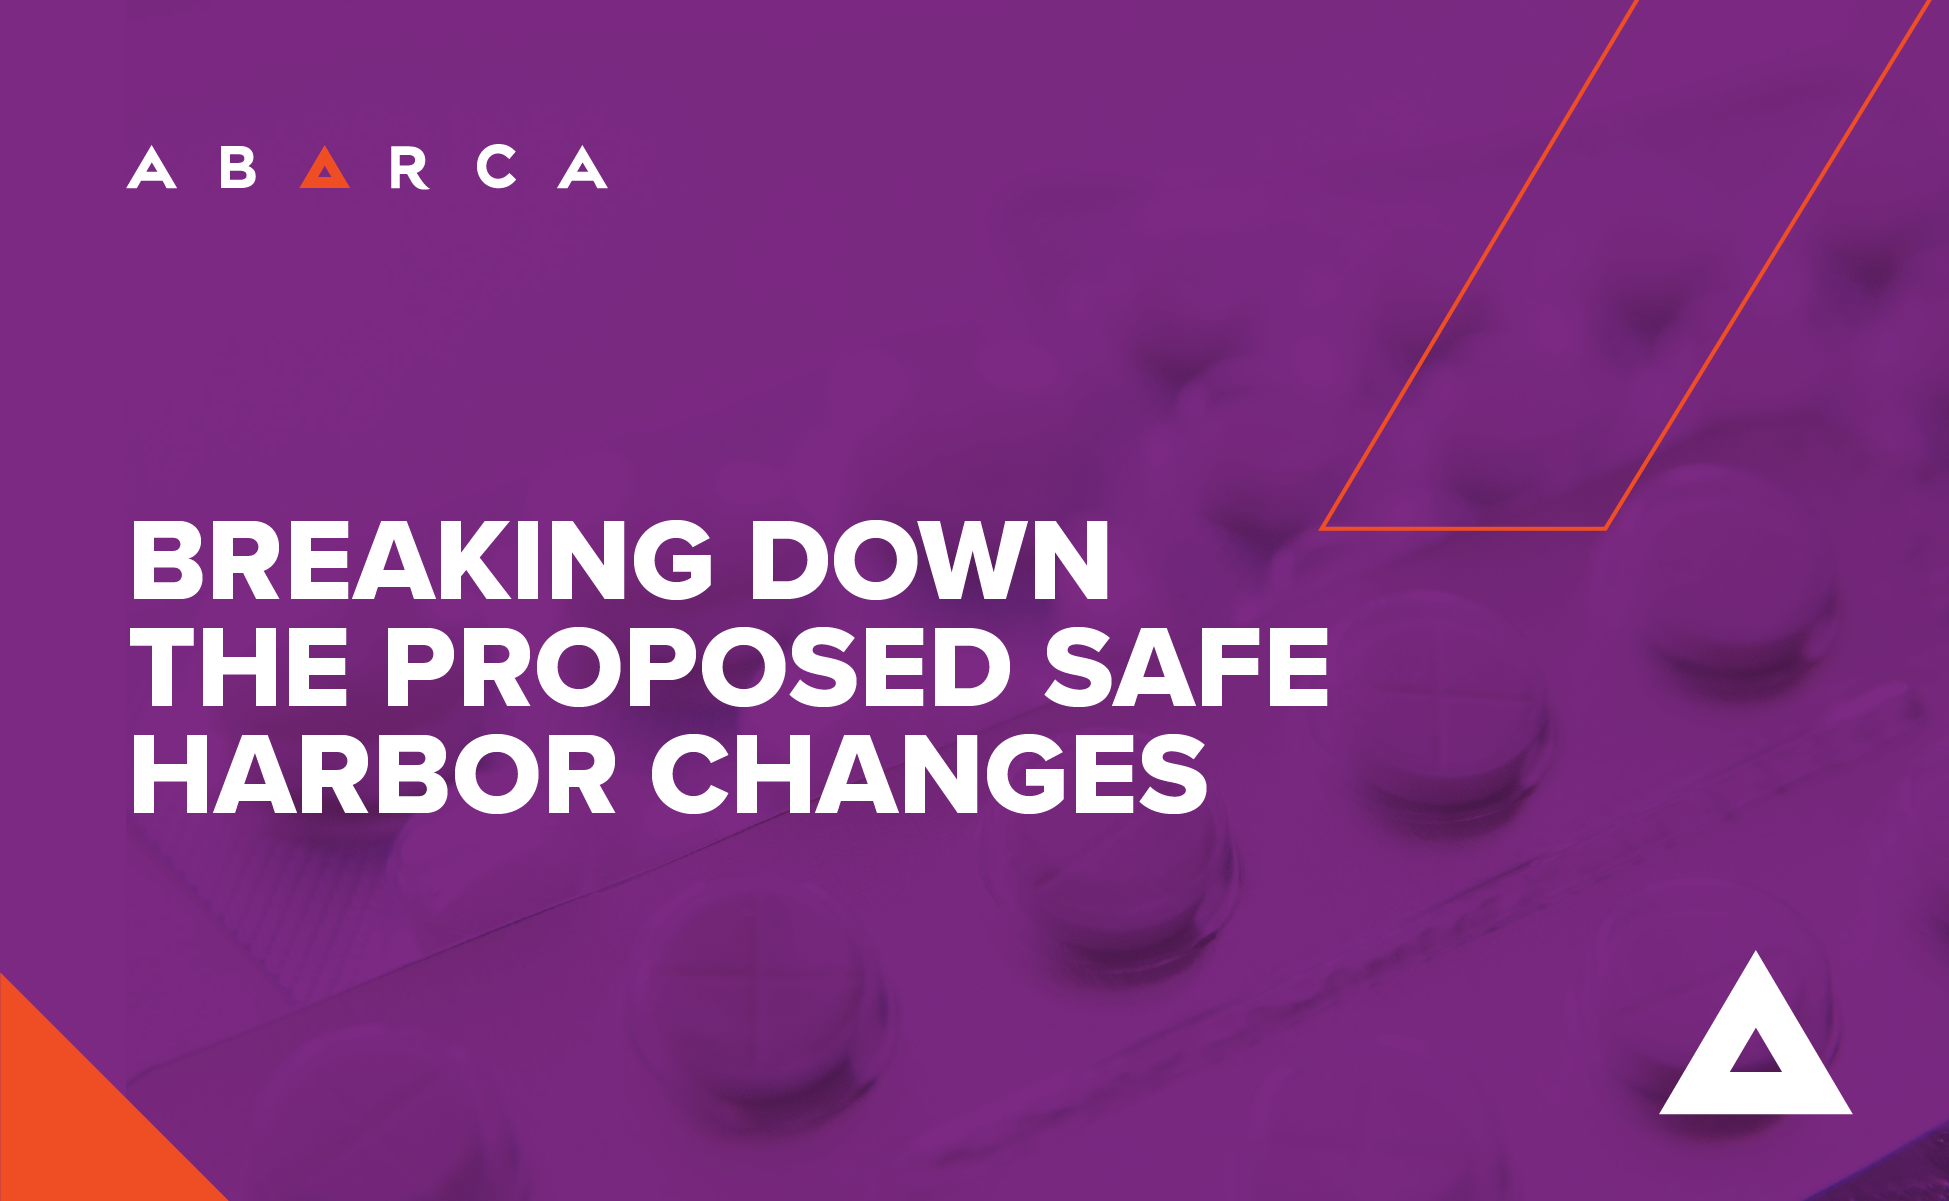 Abarca Health is breaking down the proposed safe harbor changes